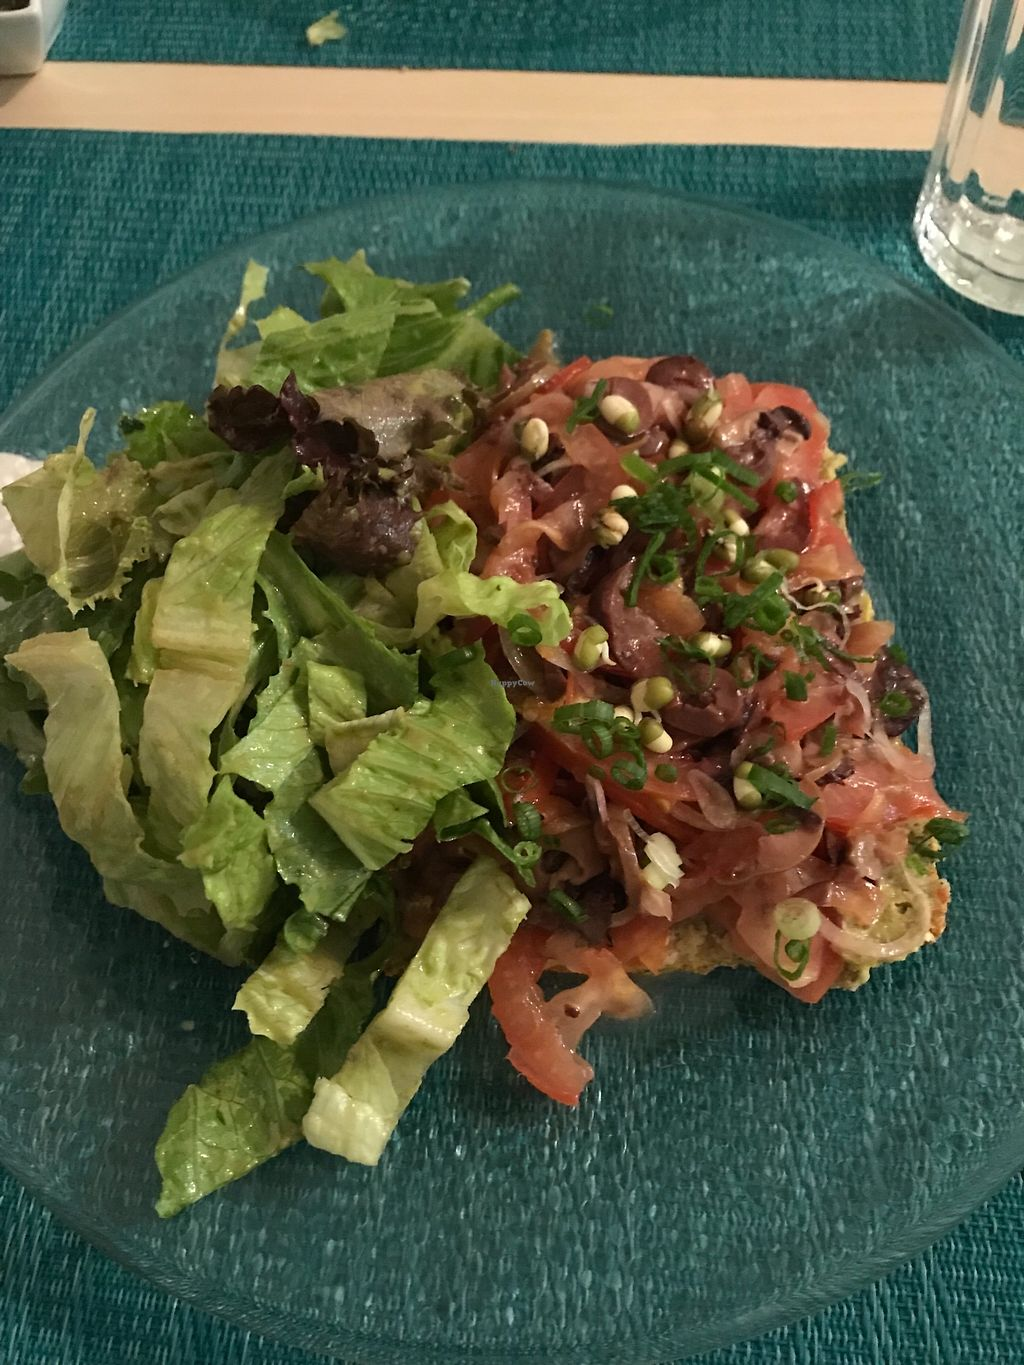 """Photo of Beauty of Sprouts  by <a href=""""/members/profile/BeGreenwithAmy"""">BeGreenwithAmy</a> <br/>Delicious Vegan food oil free upon request.  <br/> December 28, 2017  - <a href='/contact/abuse/image/46509/340078'>Report</a>"""